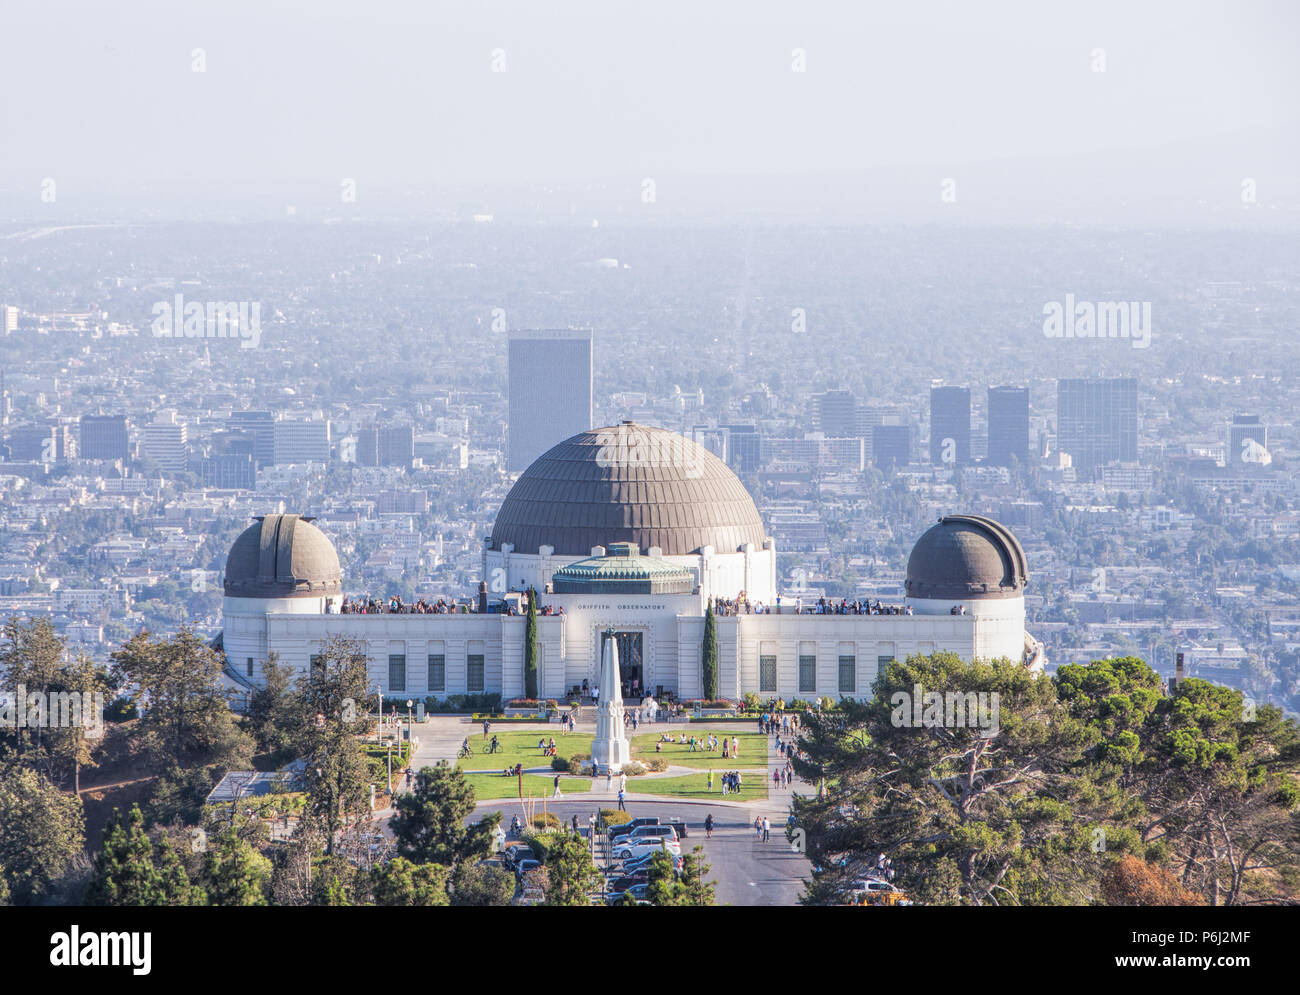 4 September 2016 - Los Angeles, USA. Famous Griffith Observatory museum building on the Hollywood Hills. Many tourists visiting planetarium with sceni - Stock Image